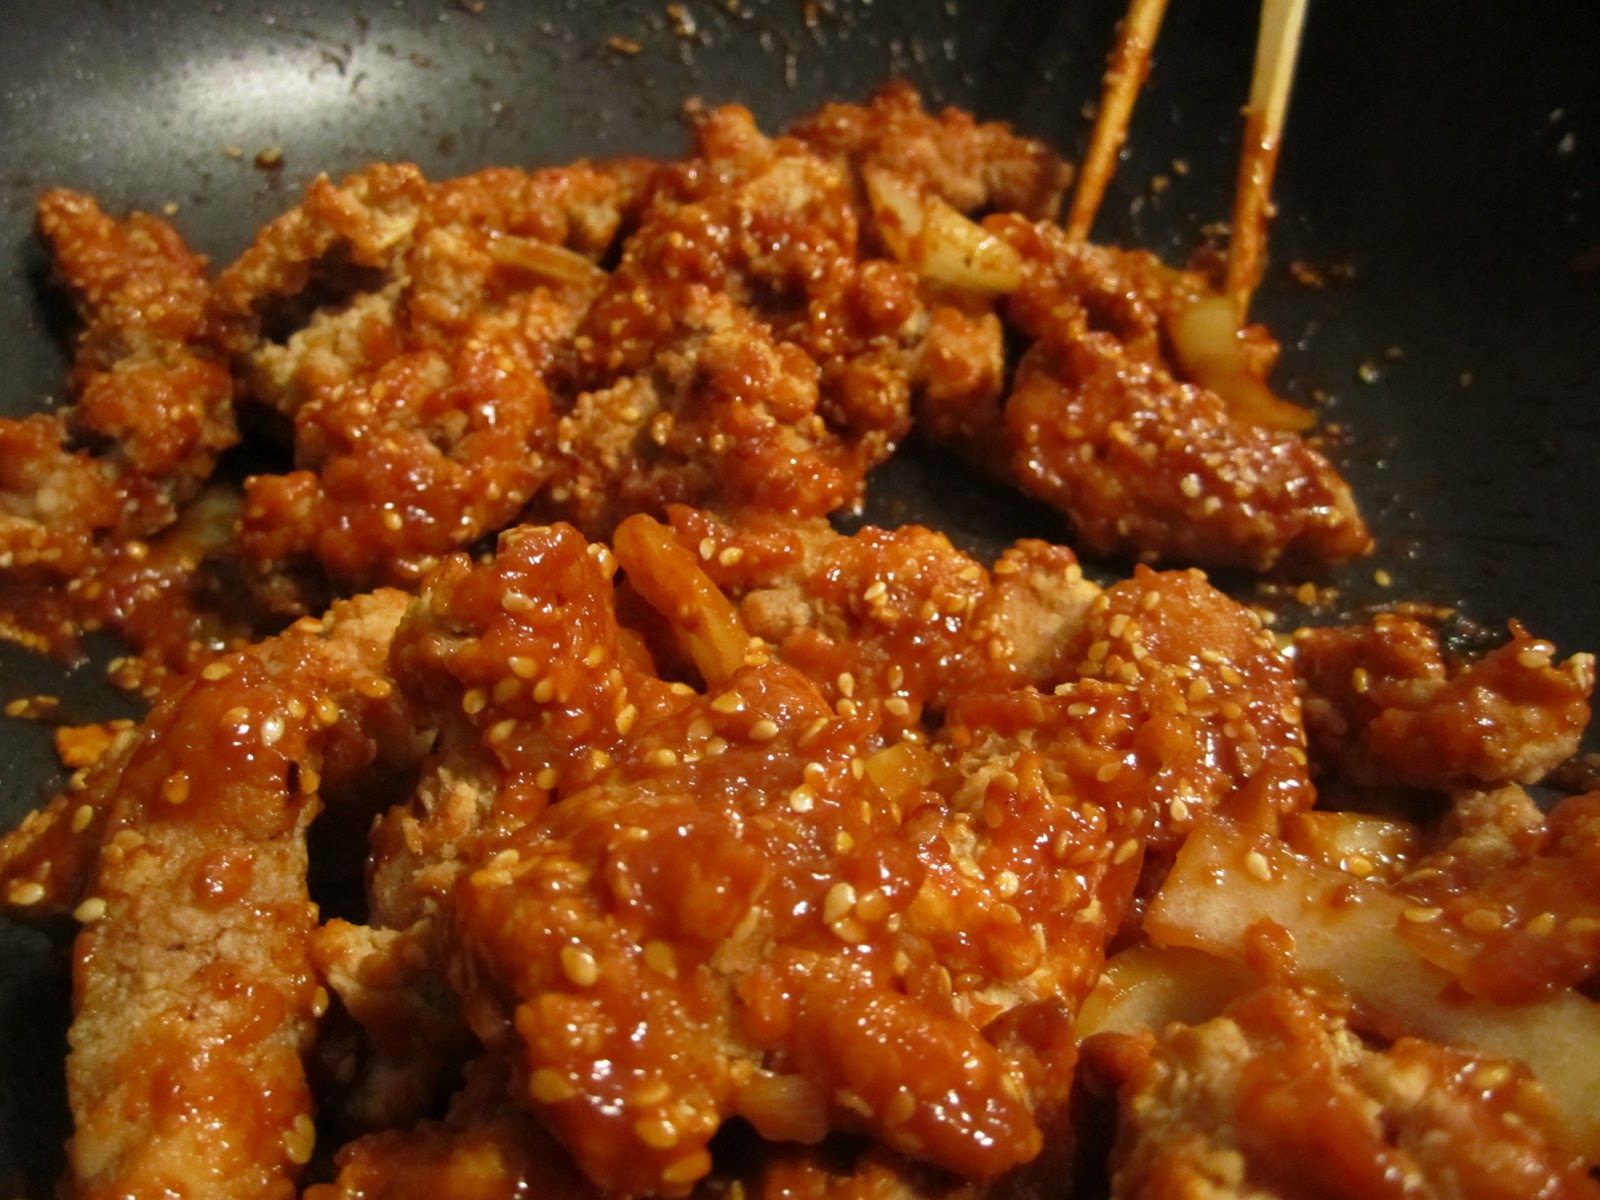 Tong dak: Korean fried chicken